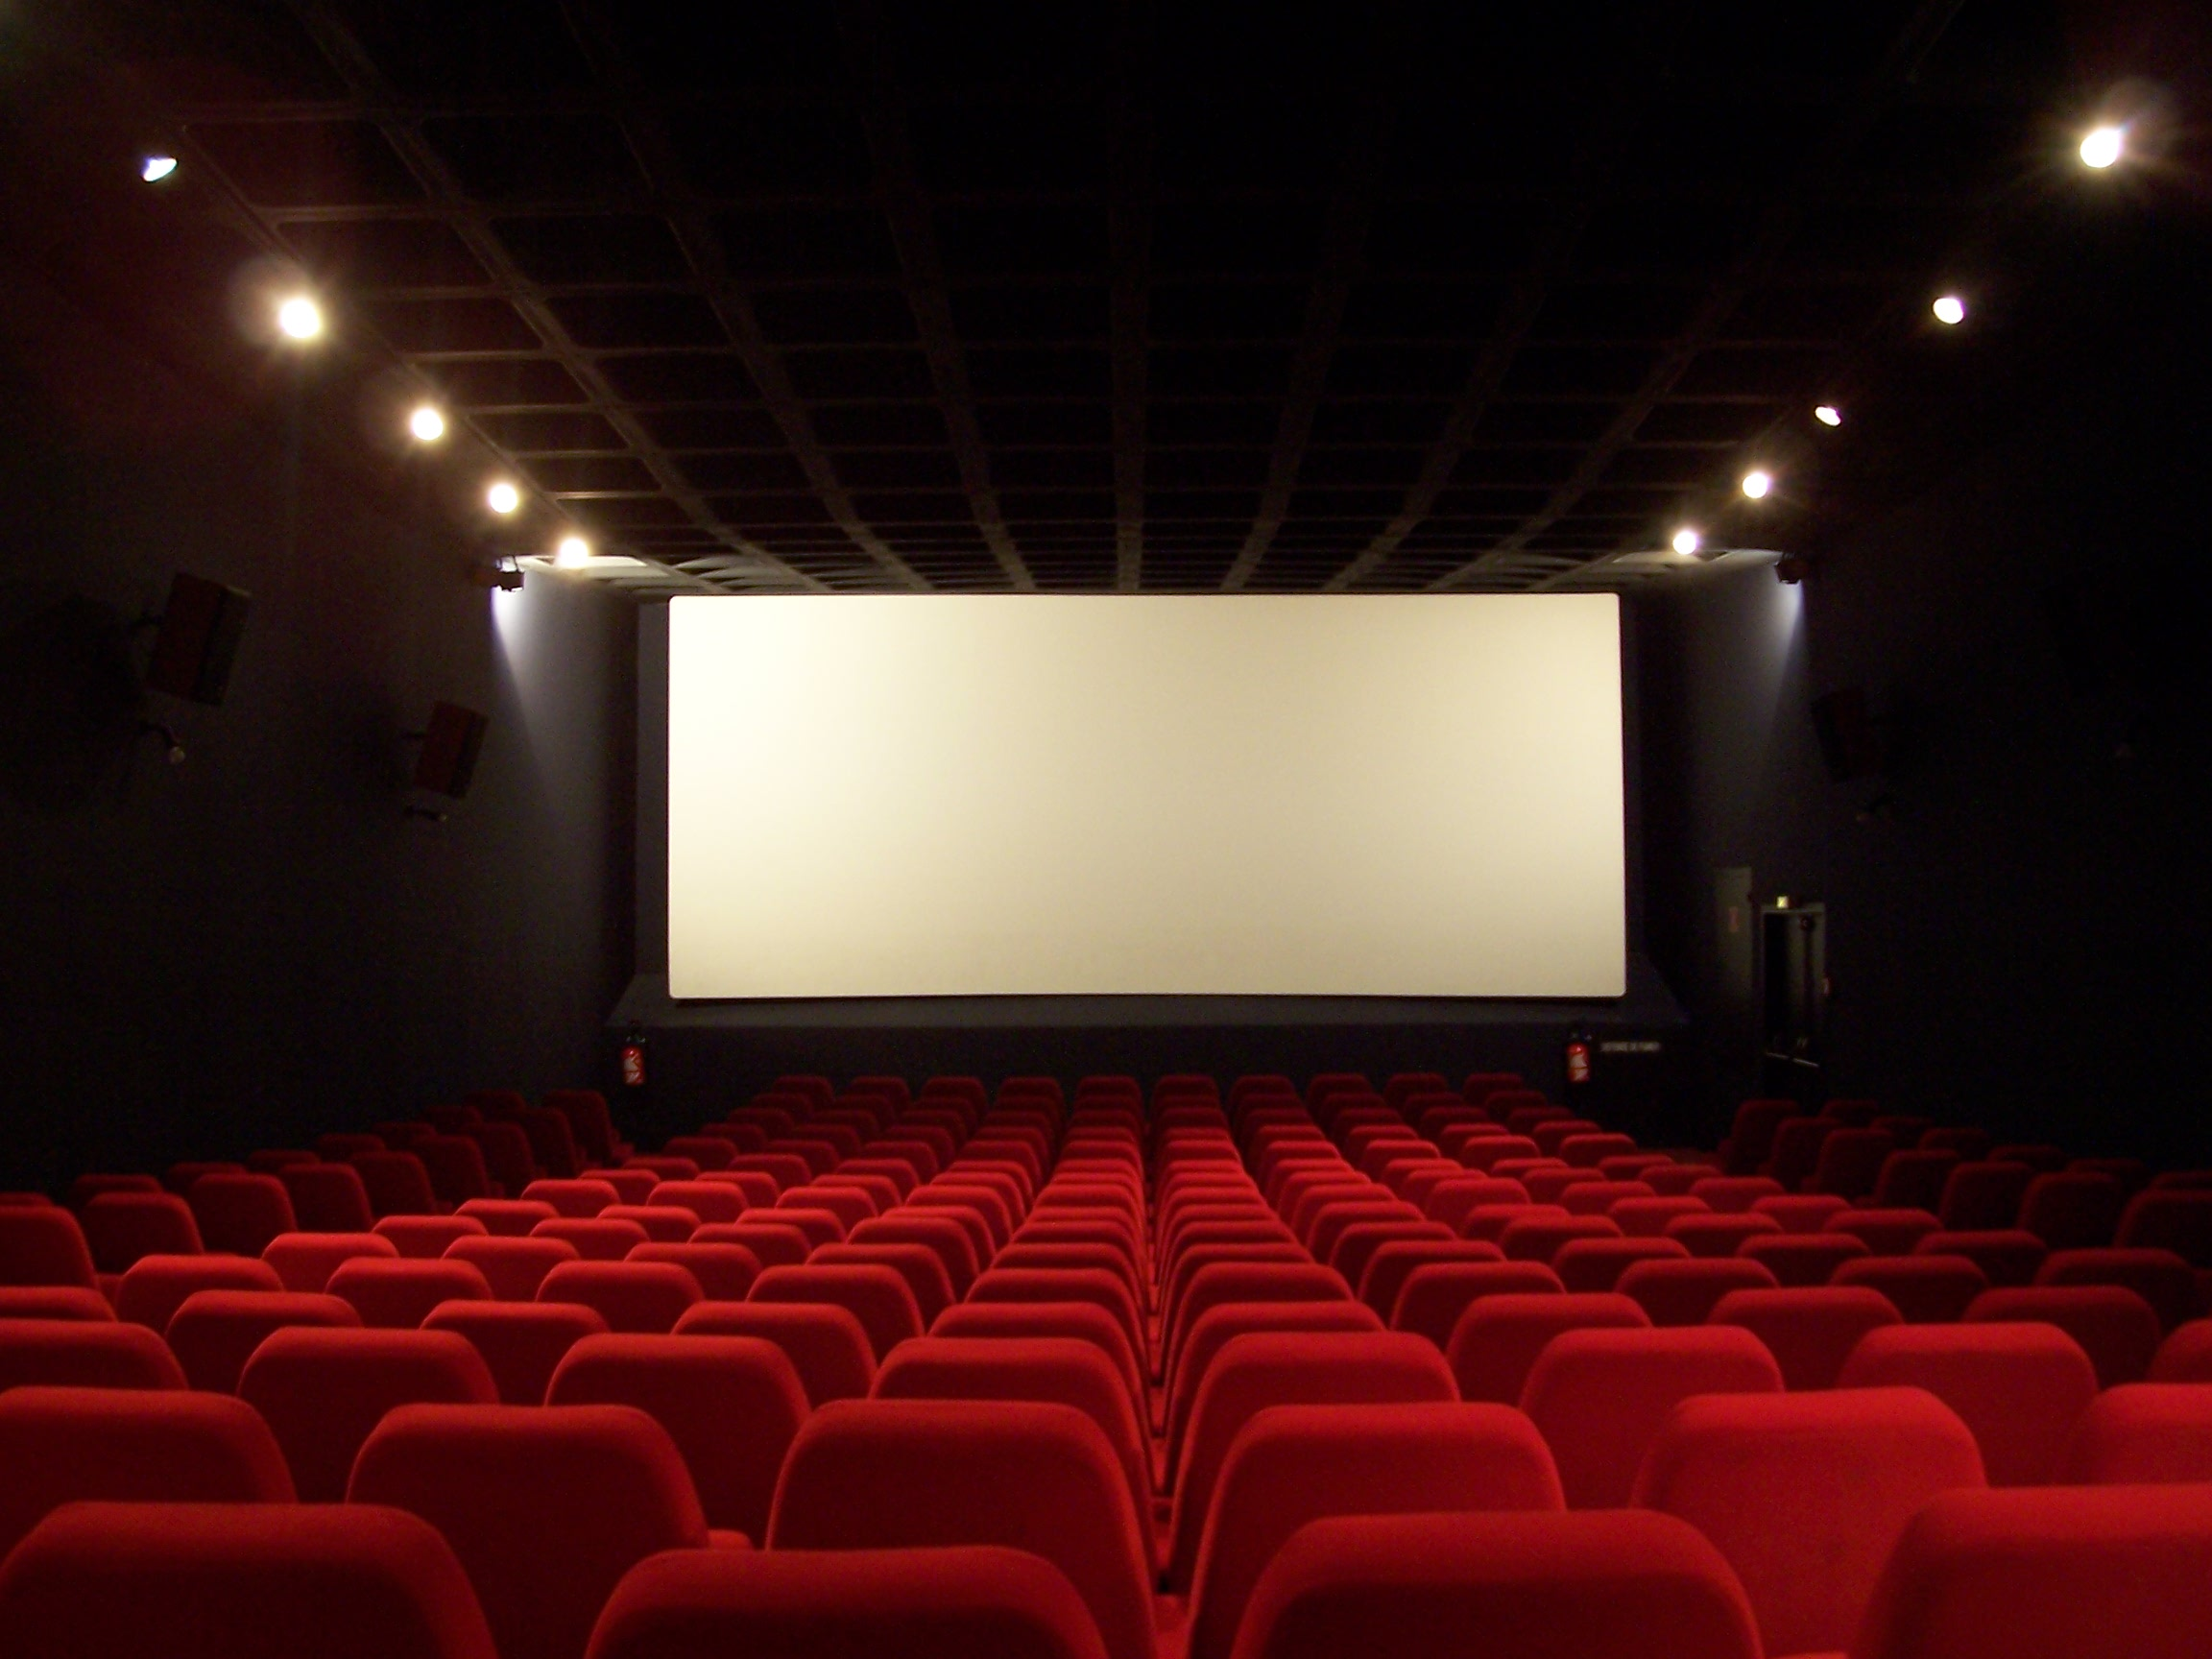 My 5 Rules For The Cinema | Decent Fellow Films